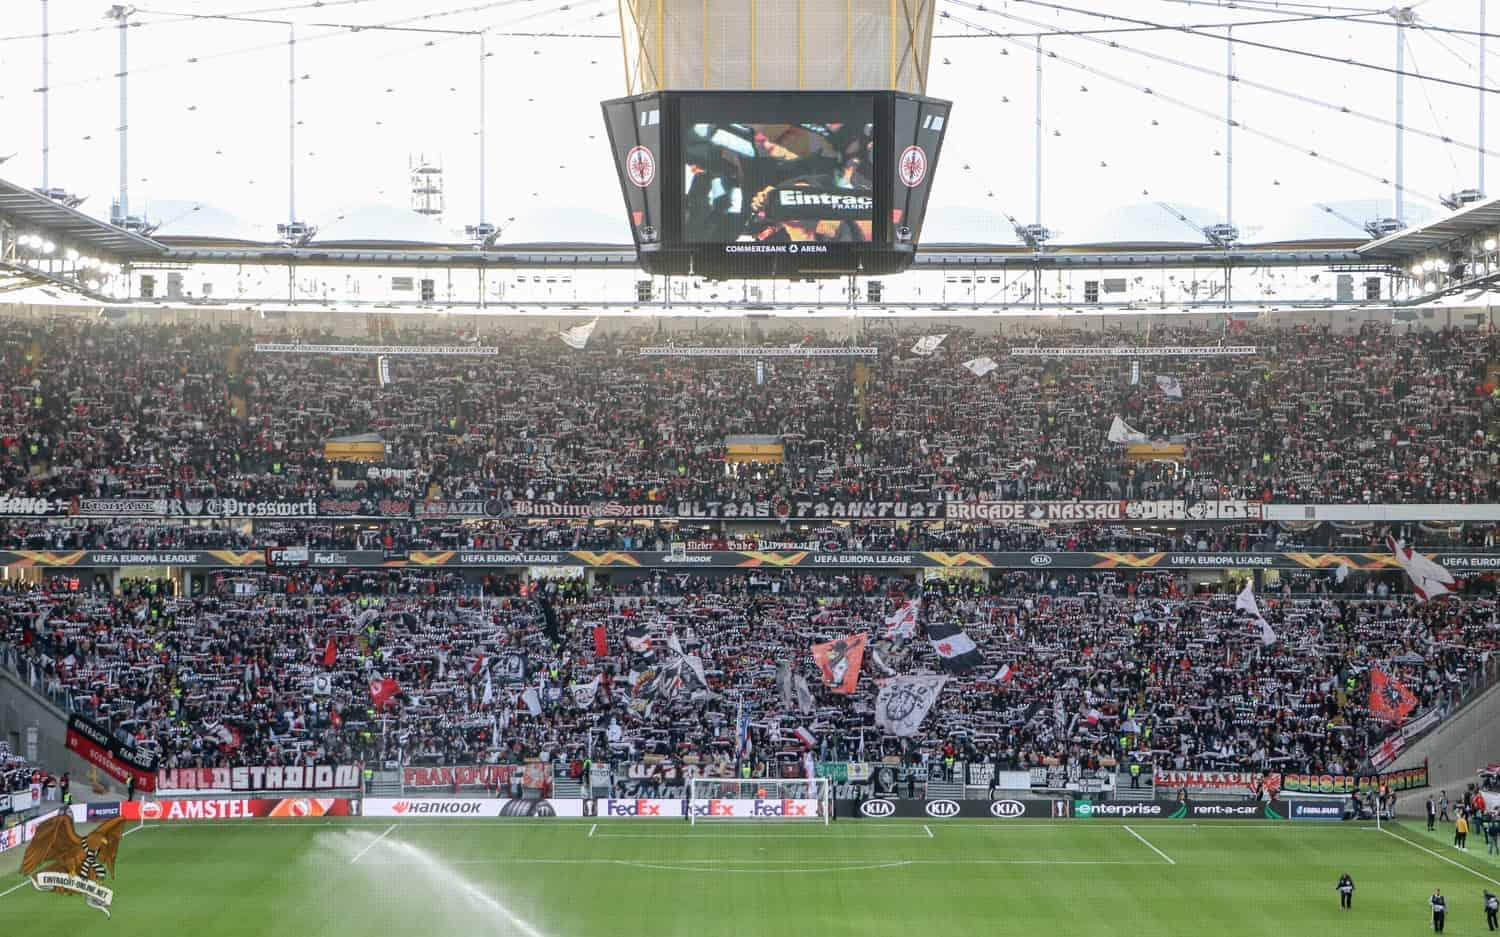 19-20-europaleague-eintracht-frankfurt-arsenal-london-01